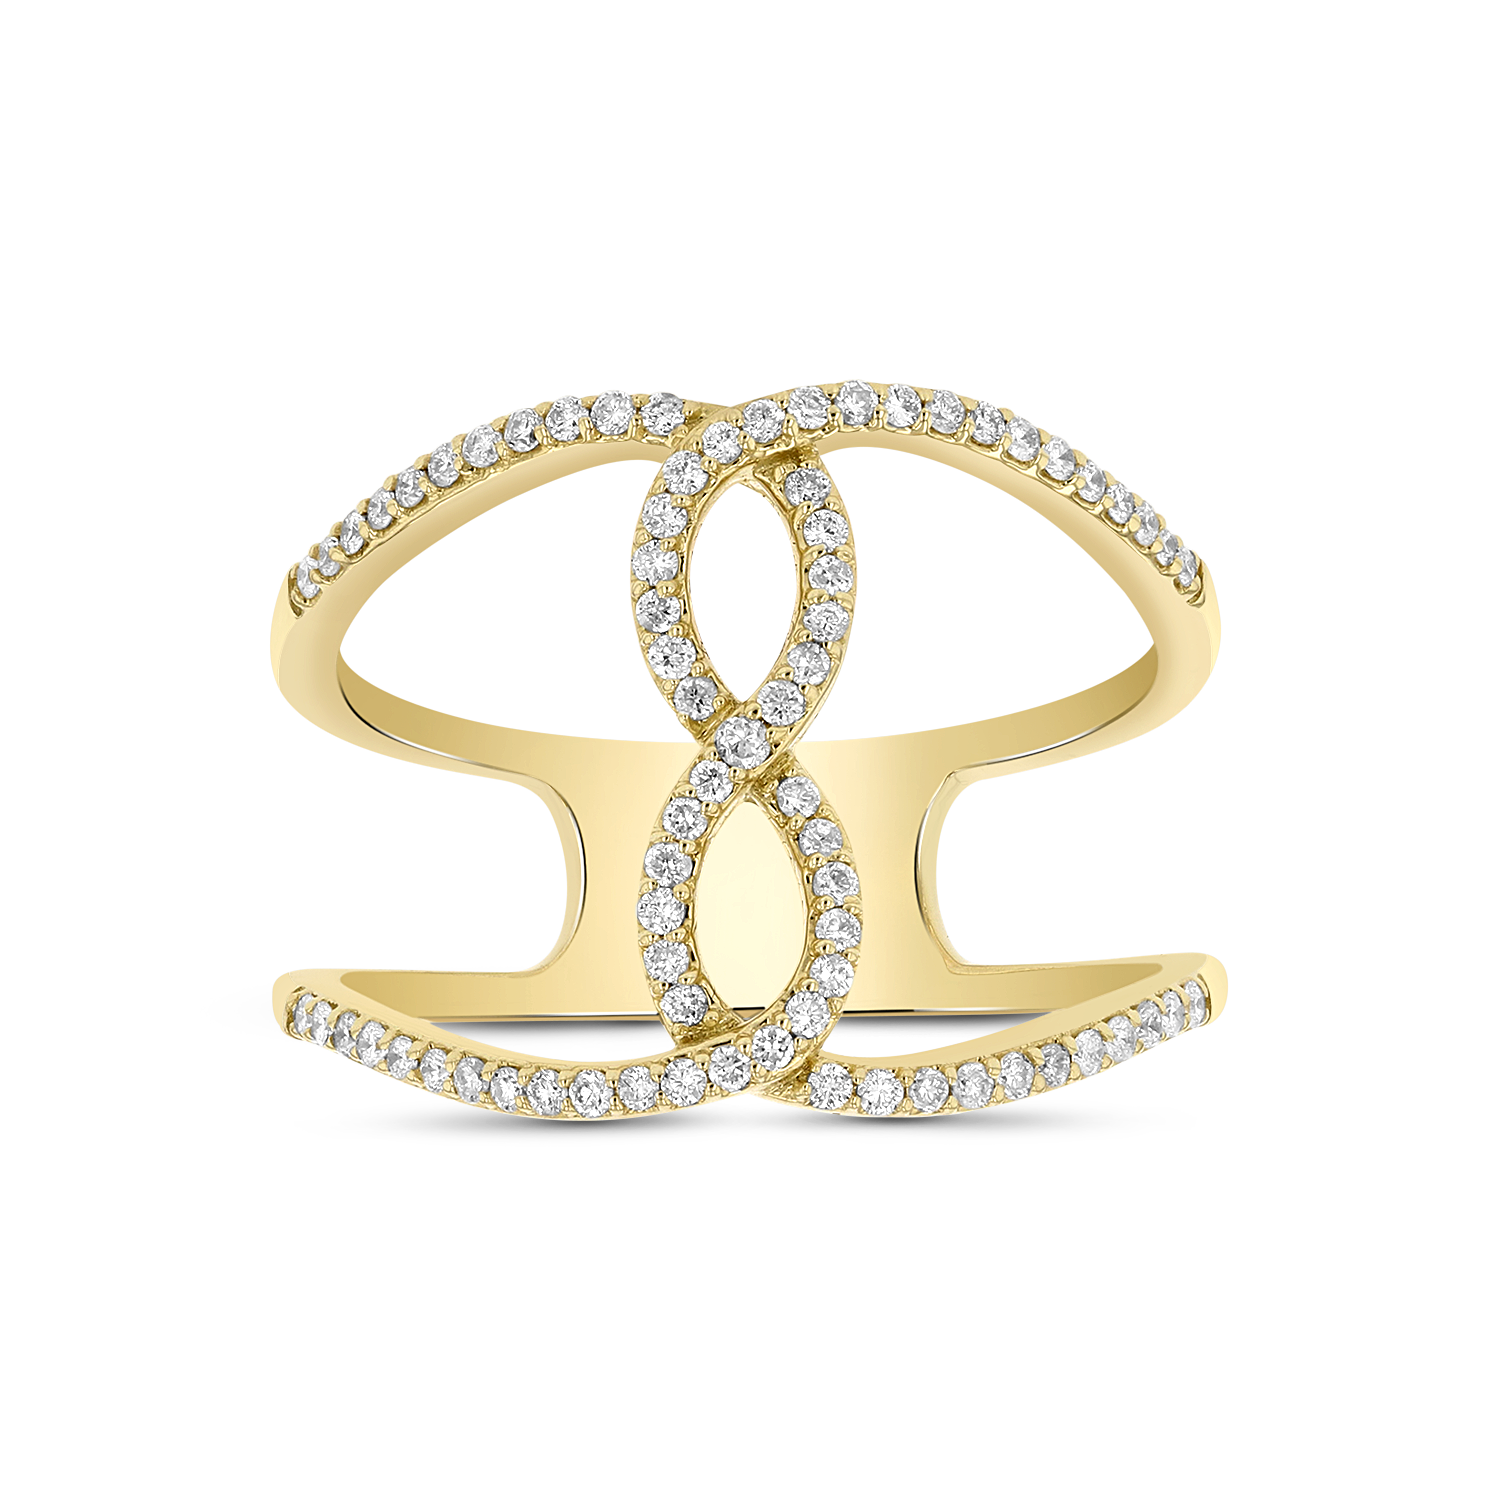 View 0.27ctw Diamond Fashion Ring in 14k Yellow Gold